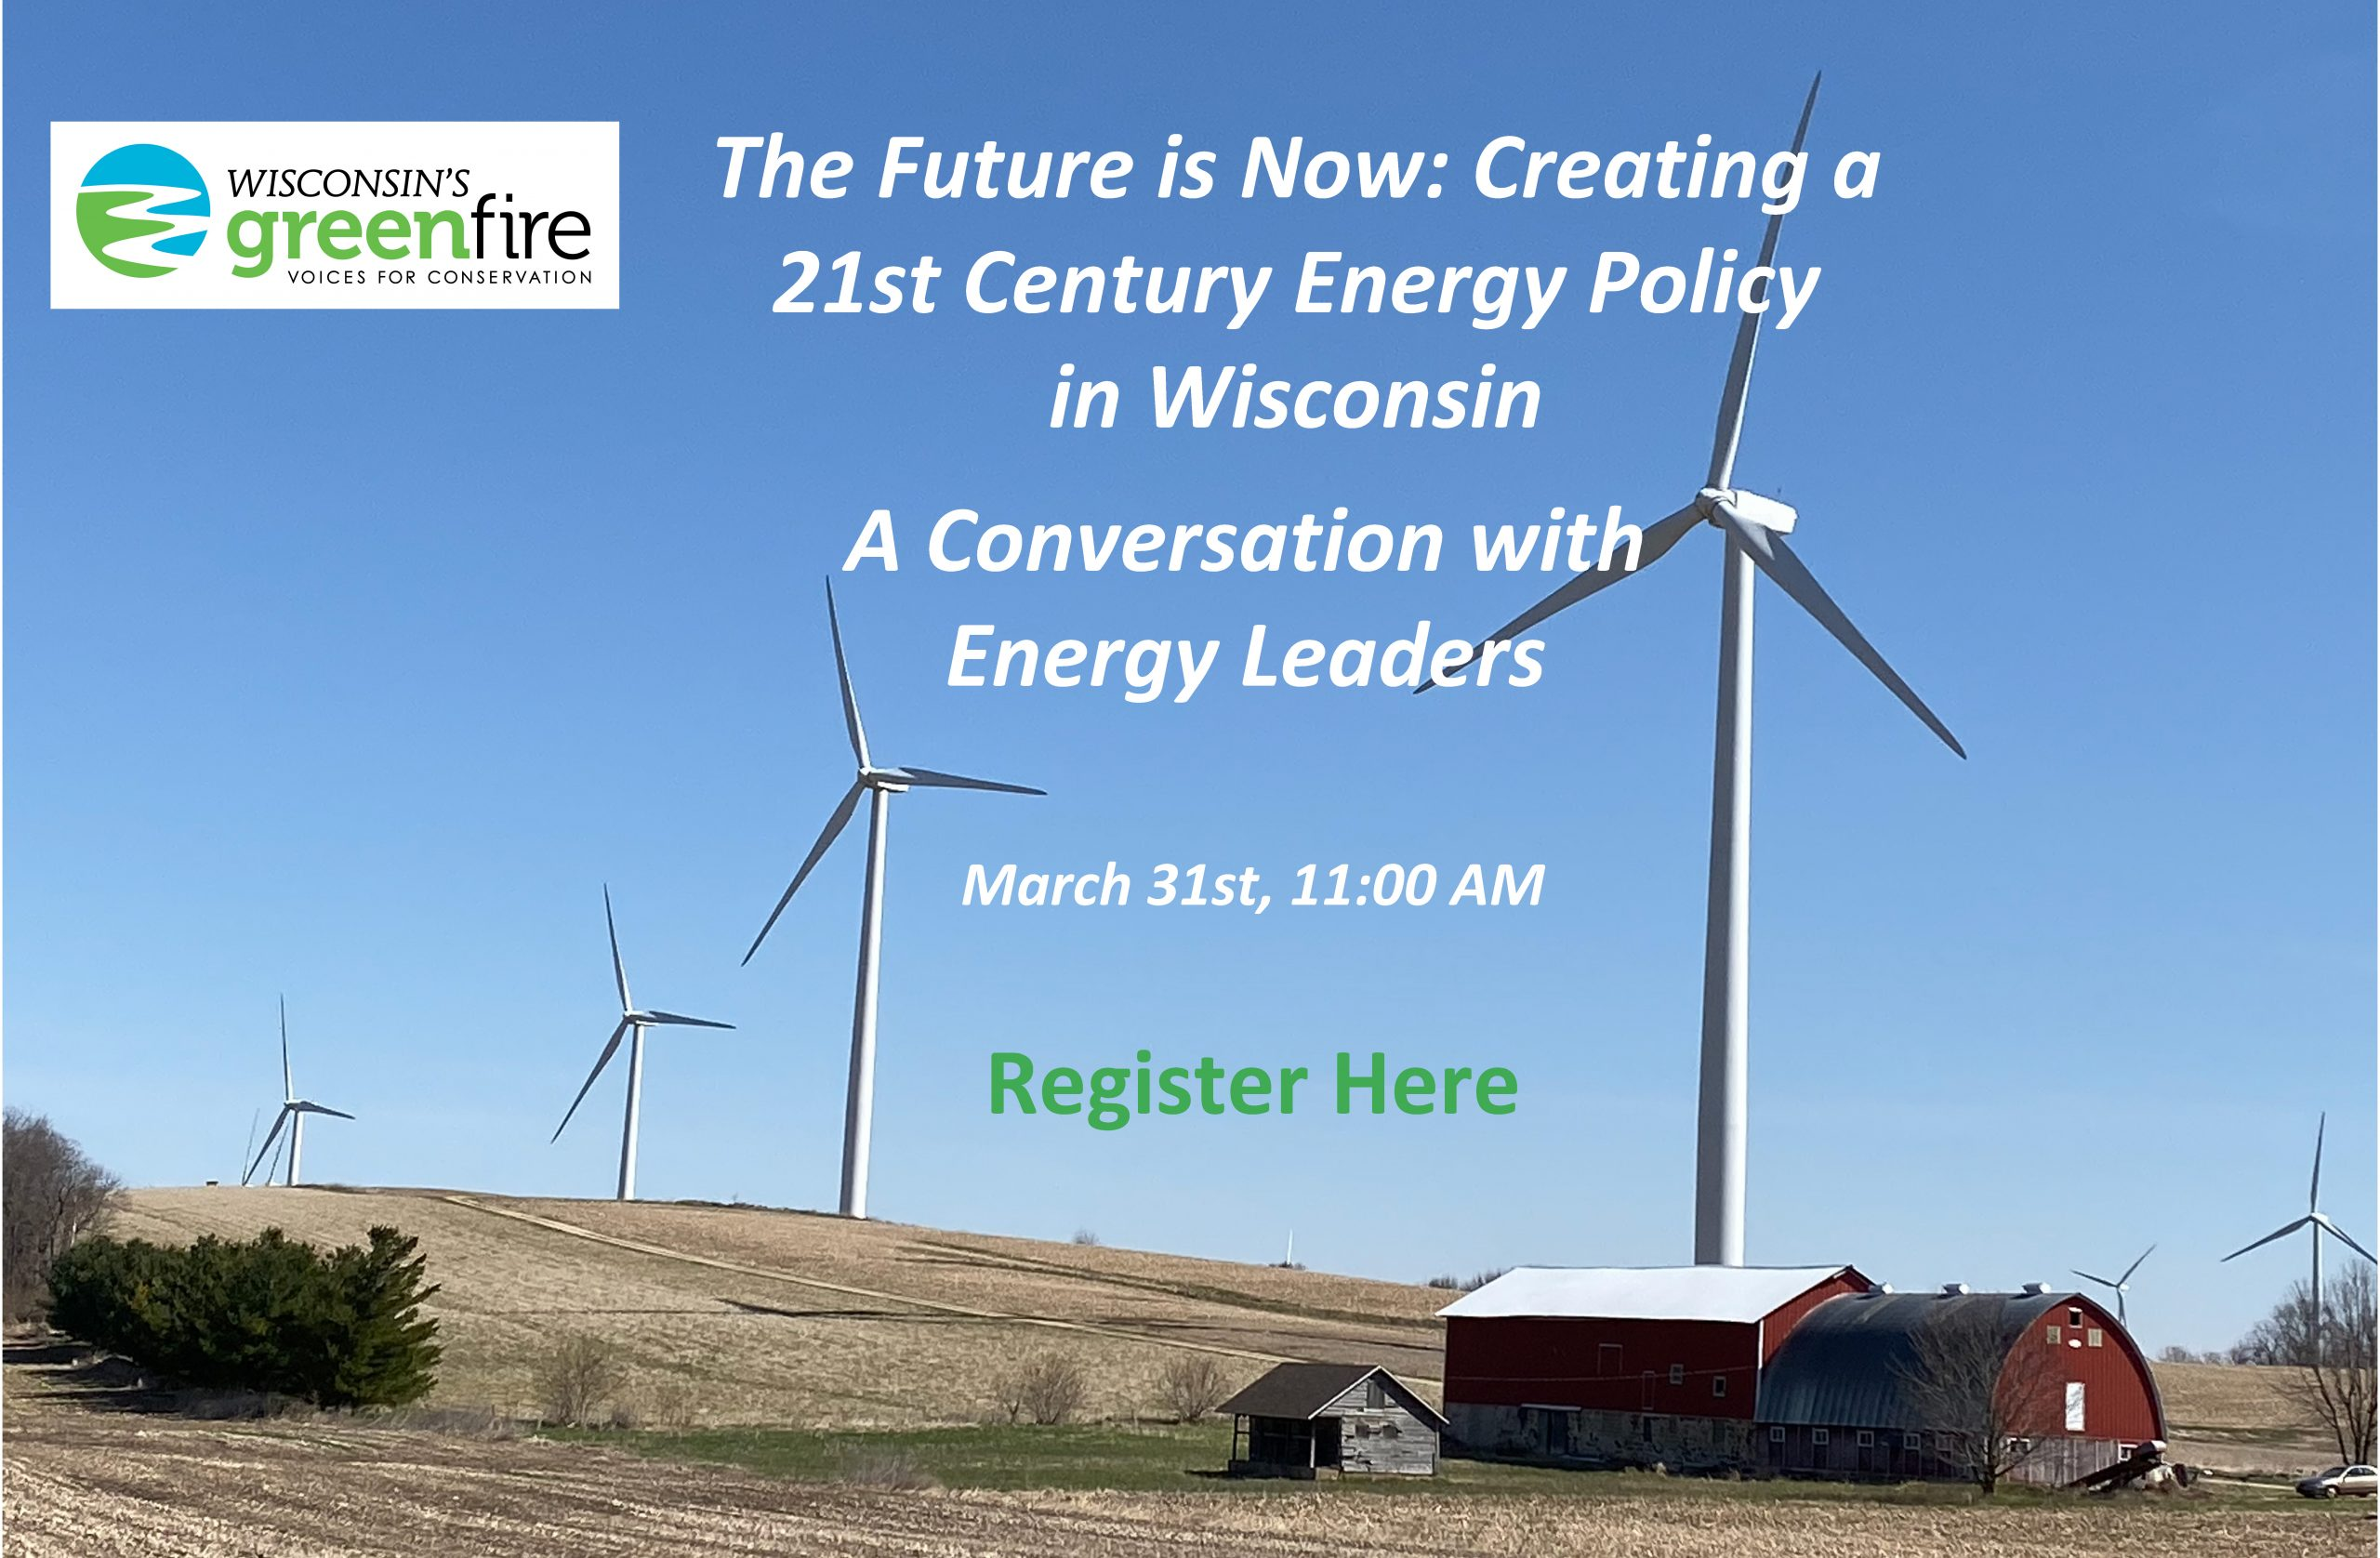 Creating a 21st Century Energy Policy in Wisconsin March 31 2021